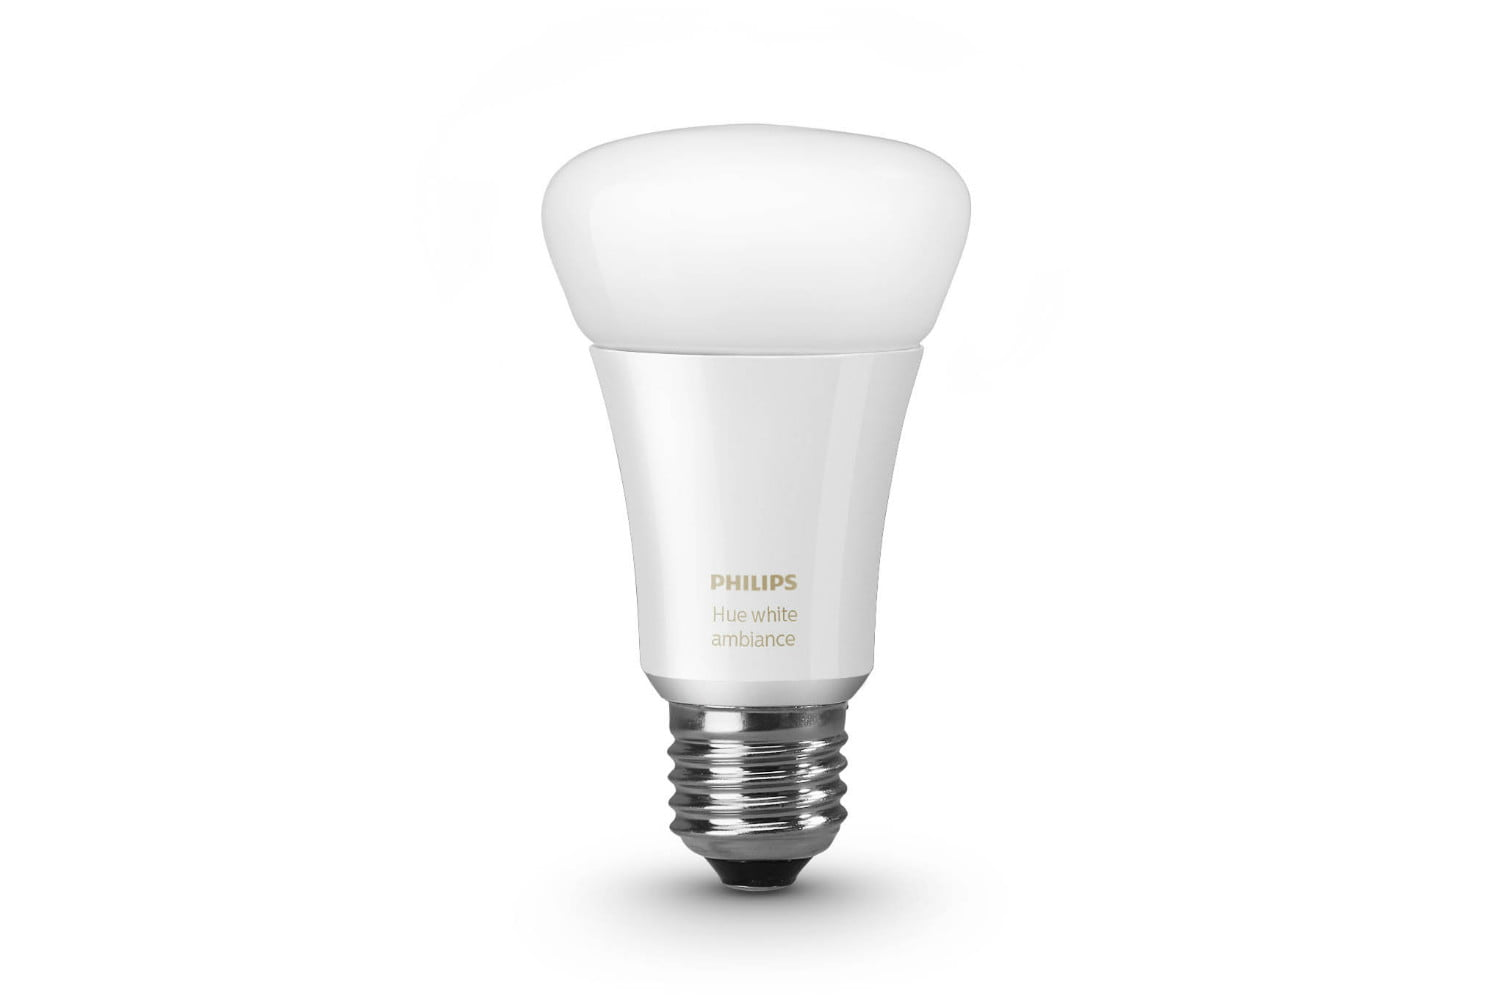 connected light philips hue white ambiance 5